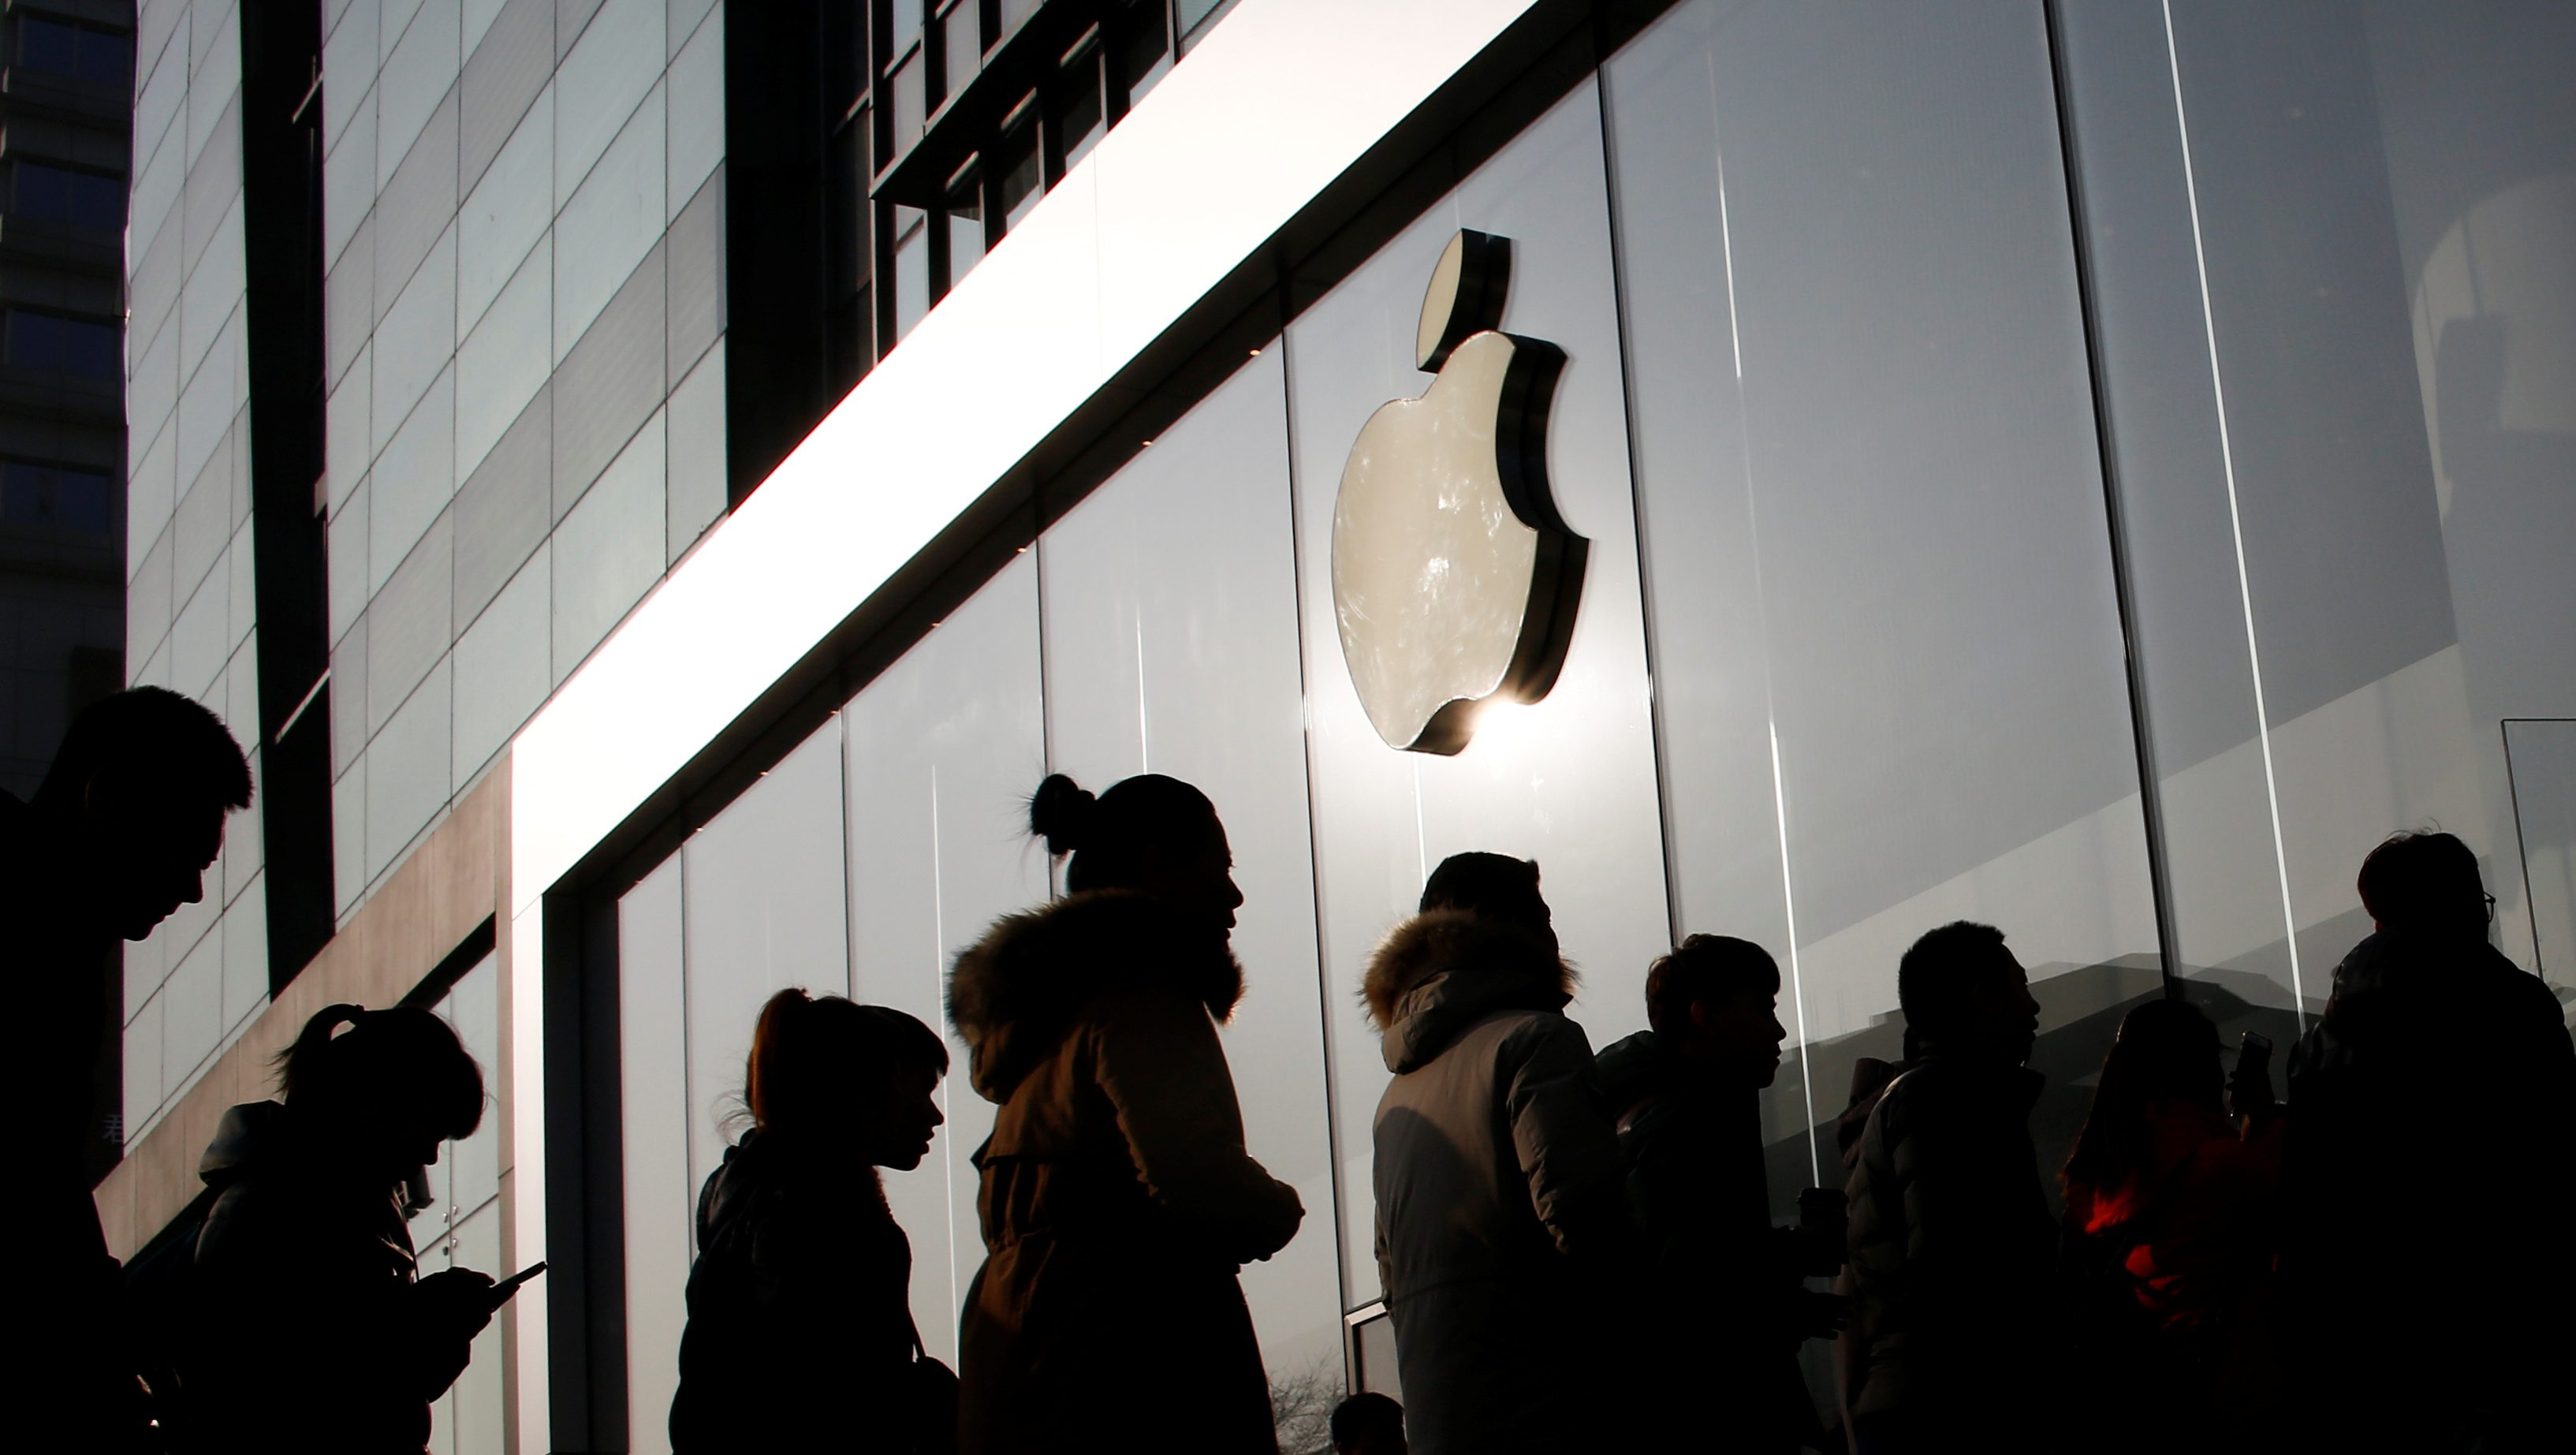 fd62dc331a9 Why Apple (AAPL) thinks it can succeed at retail stores while others ...